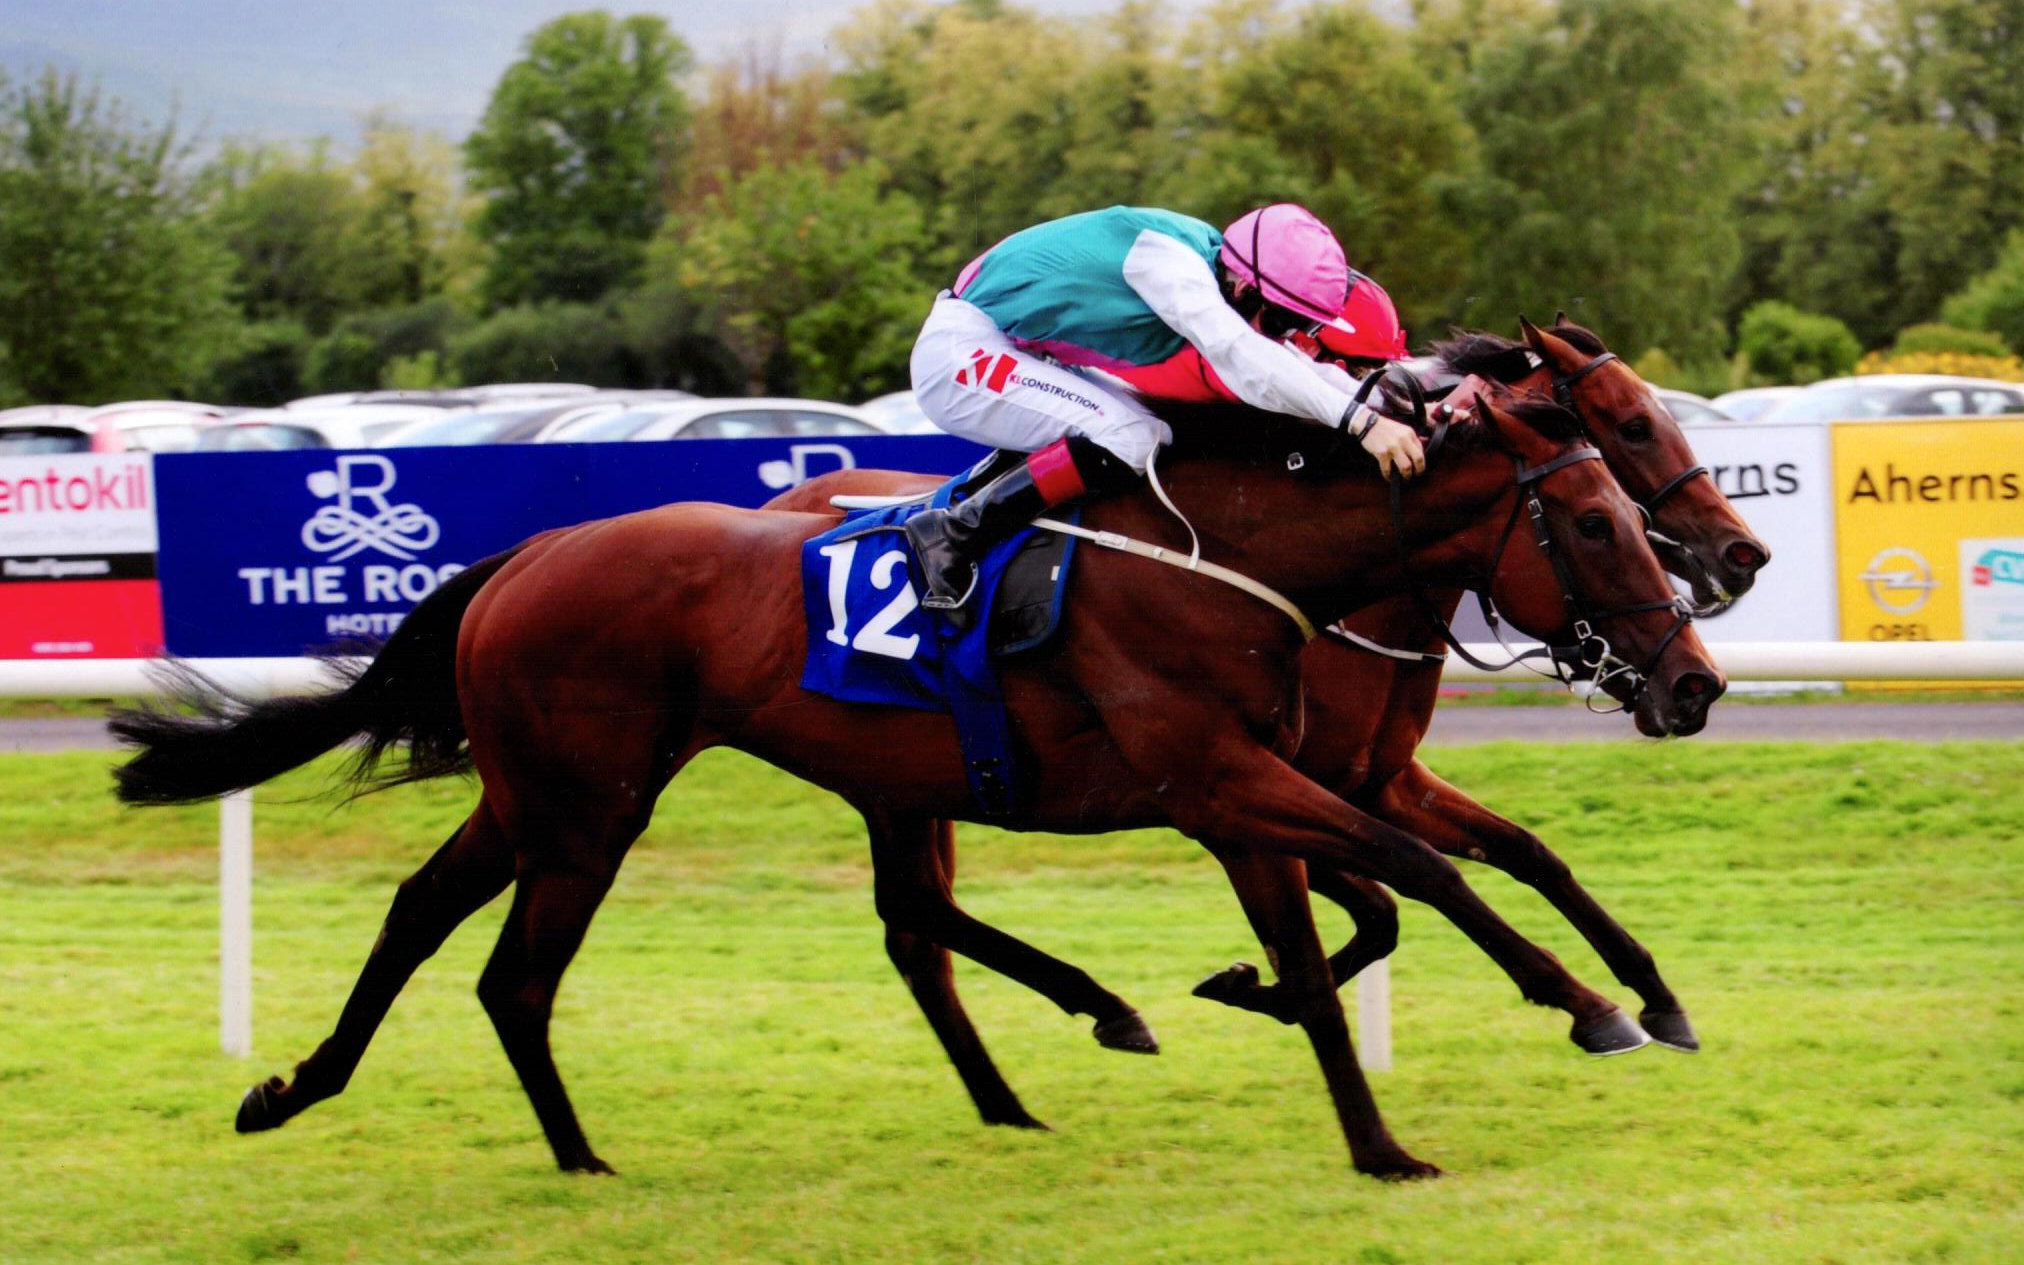 VIADERA lands the Cairn Rouge Listed Stakes (1m) by just a short head at Killarney, 17th July 2019